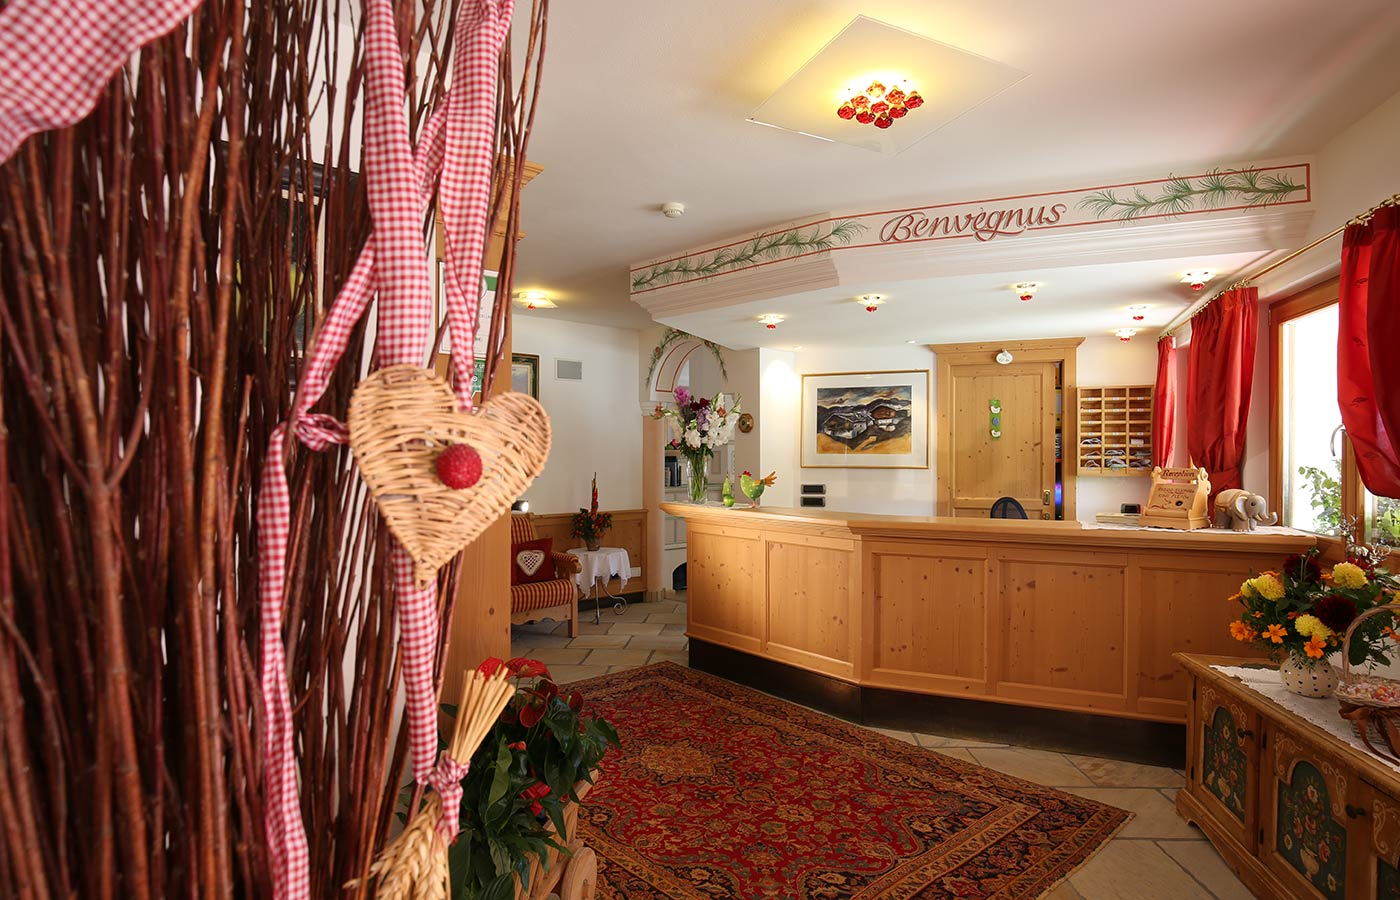 Hotel Mesdìs reception with wood furnishings, flowers on the desk and a carpet on the floor